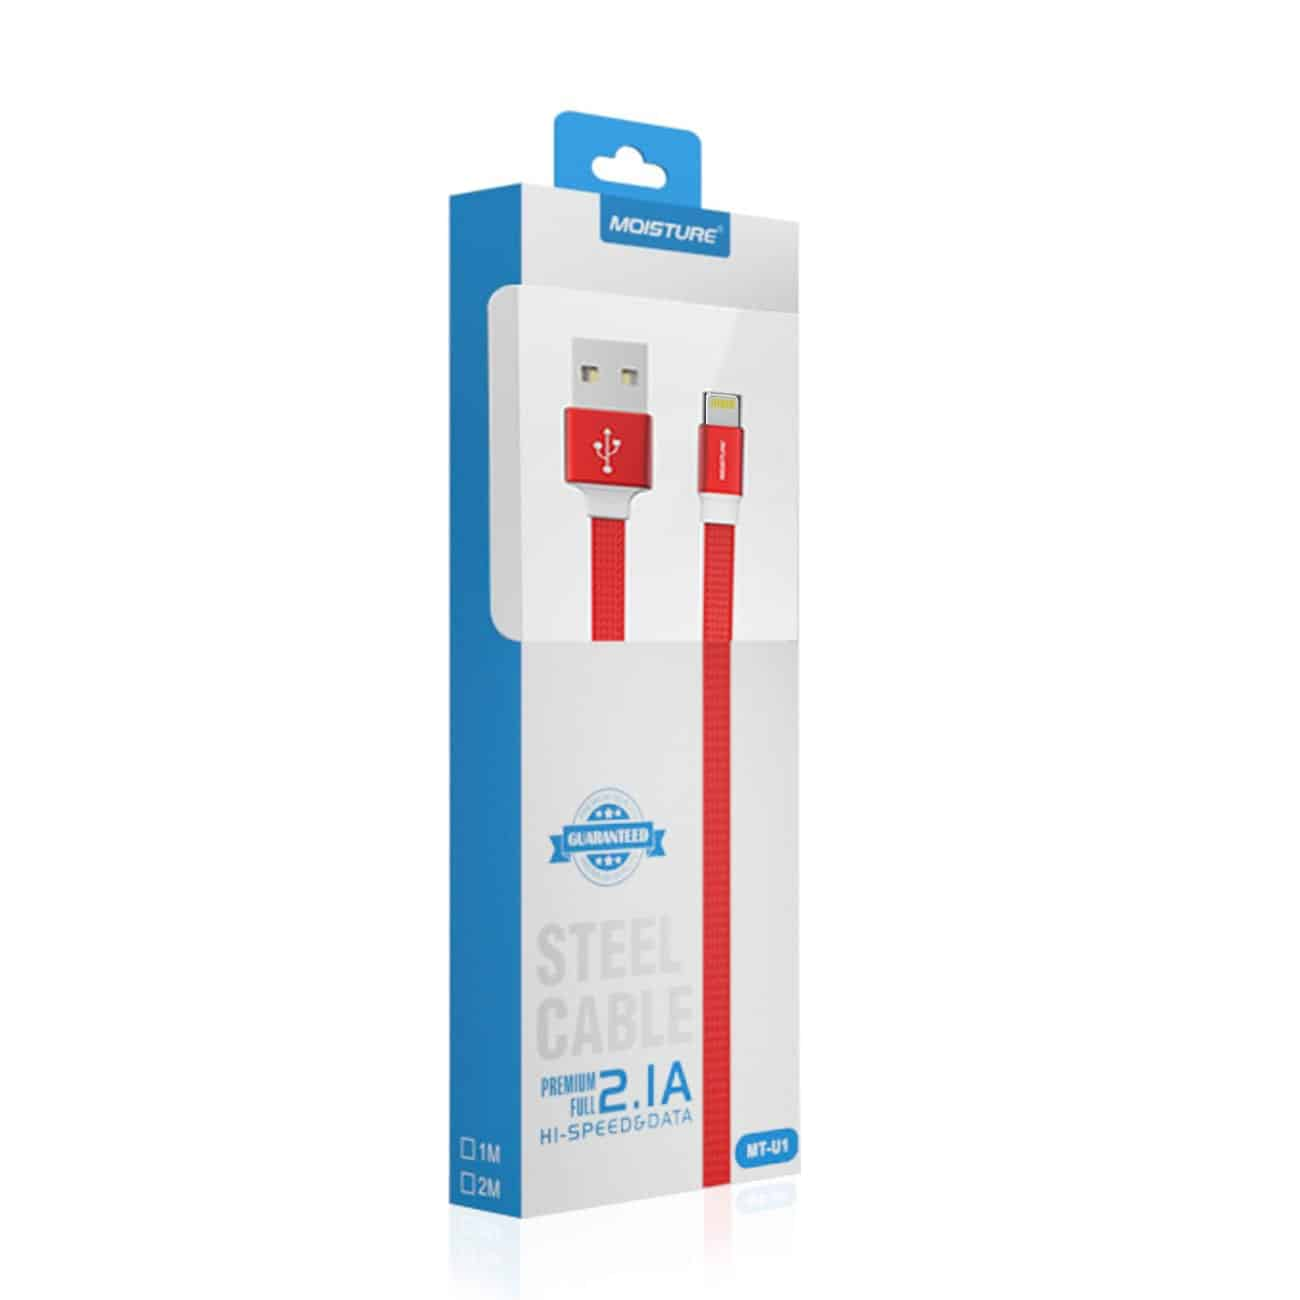 High Speed Steel 8 PIN Data Cable in Red